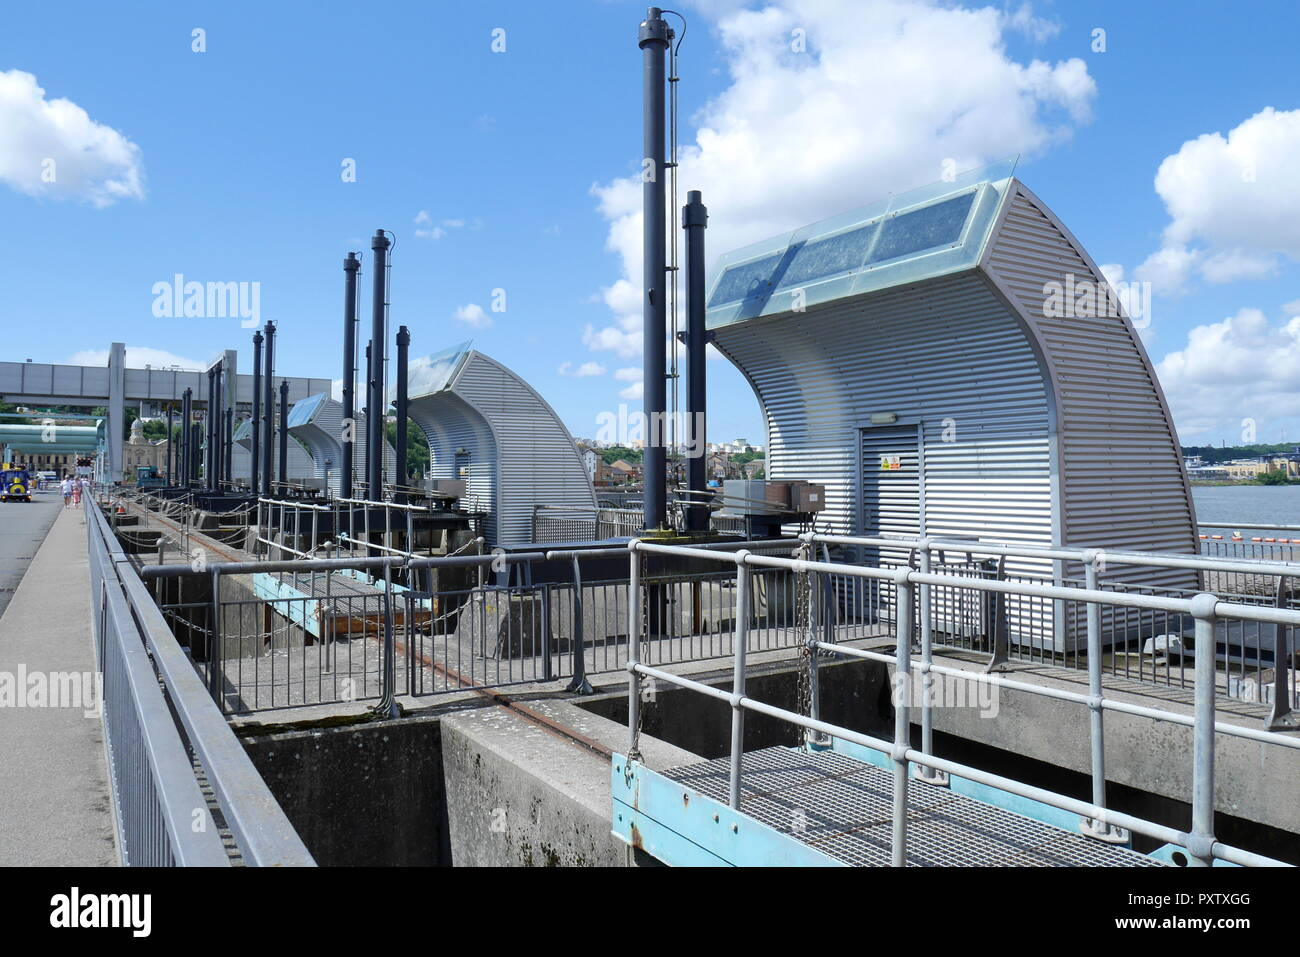 Cardiff Bay Barrage, showing the sluice contro shafts, connecting Cardiff and Penarth, Cardiff, South Wales, United Kingdom - Stock Image